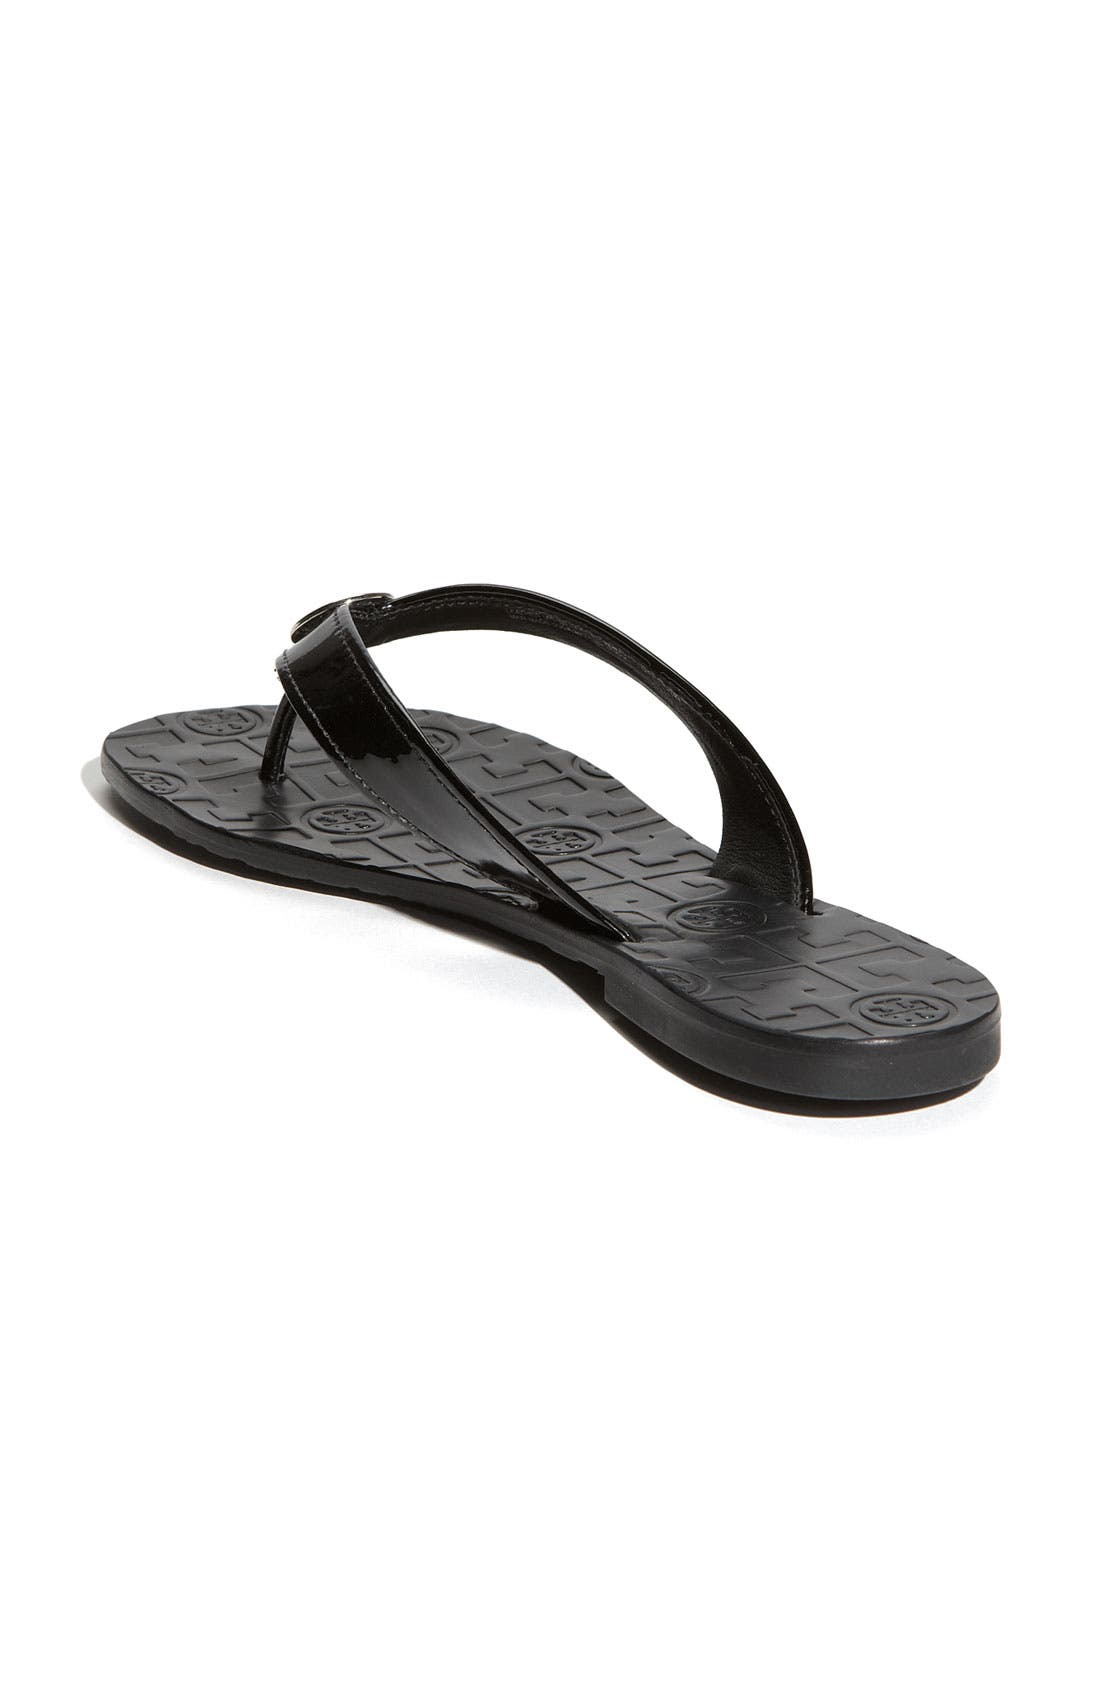 Alternate Image 2  - Tory Burch 'Thora' Flip Flop (Women)